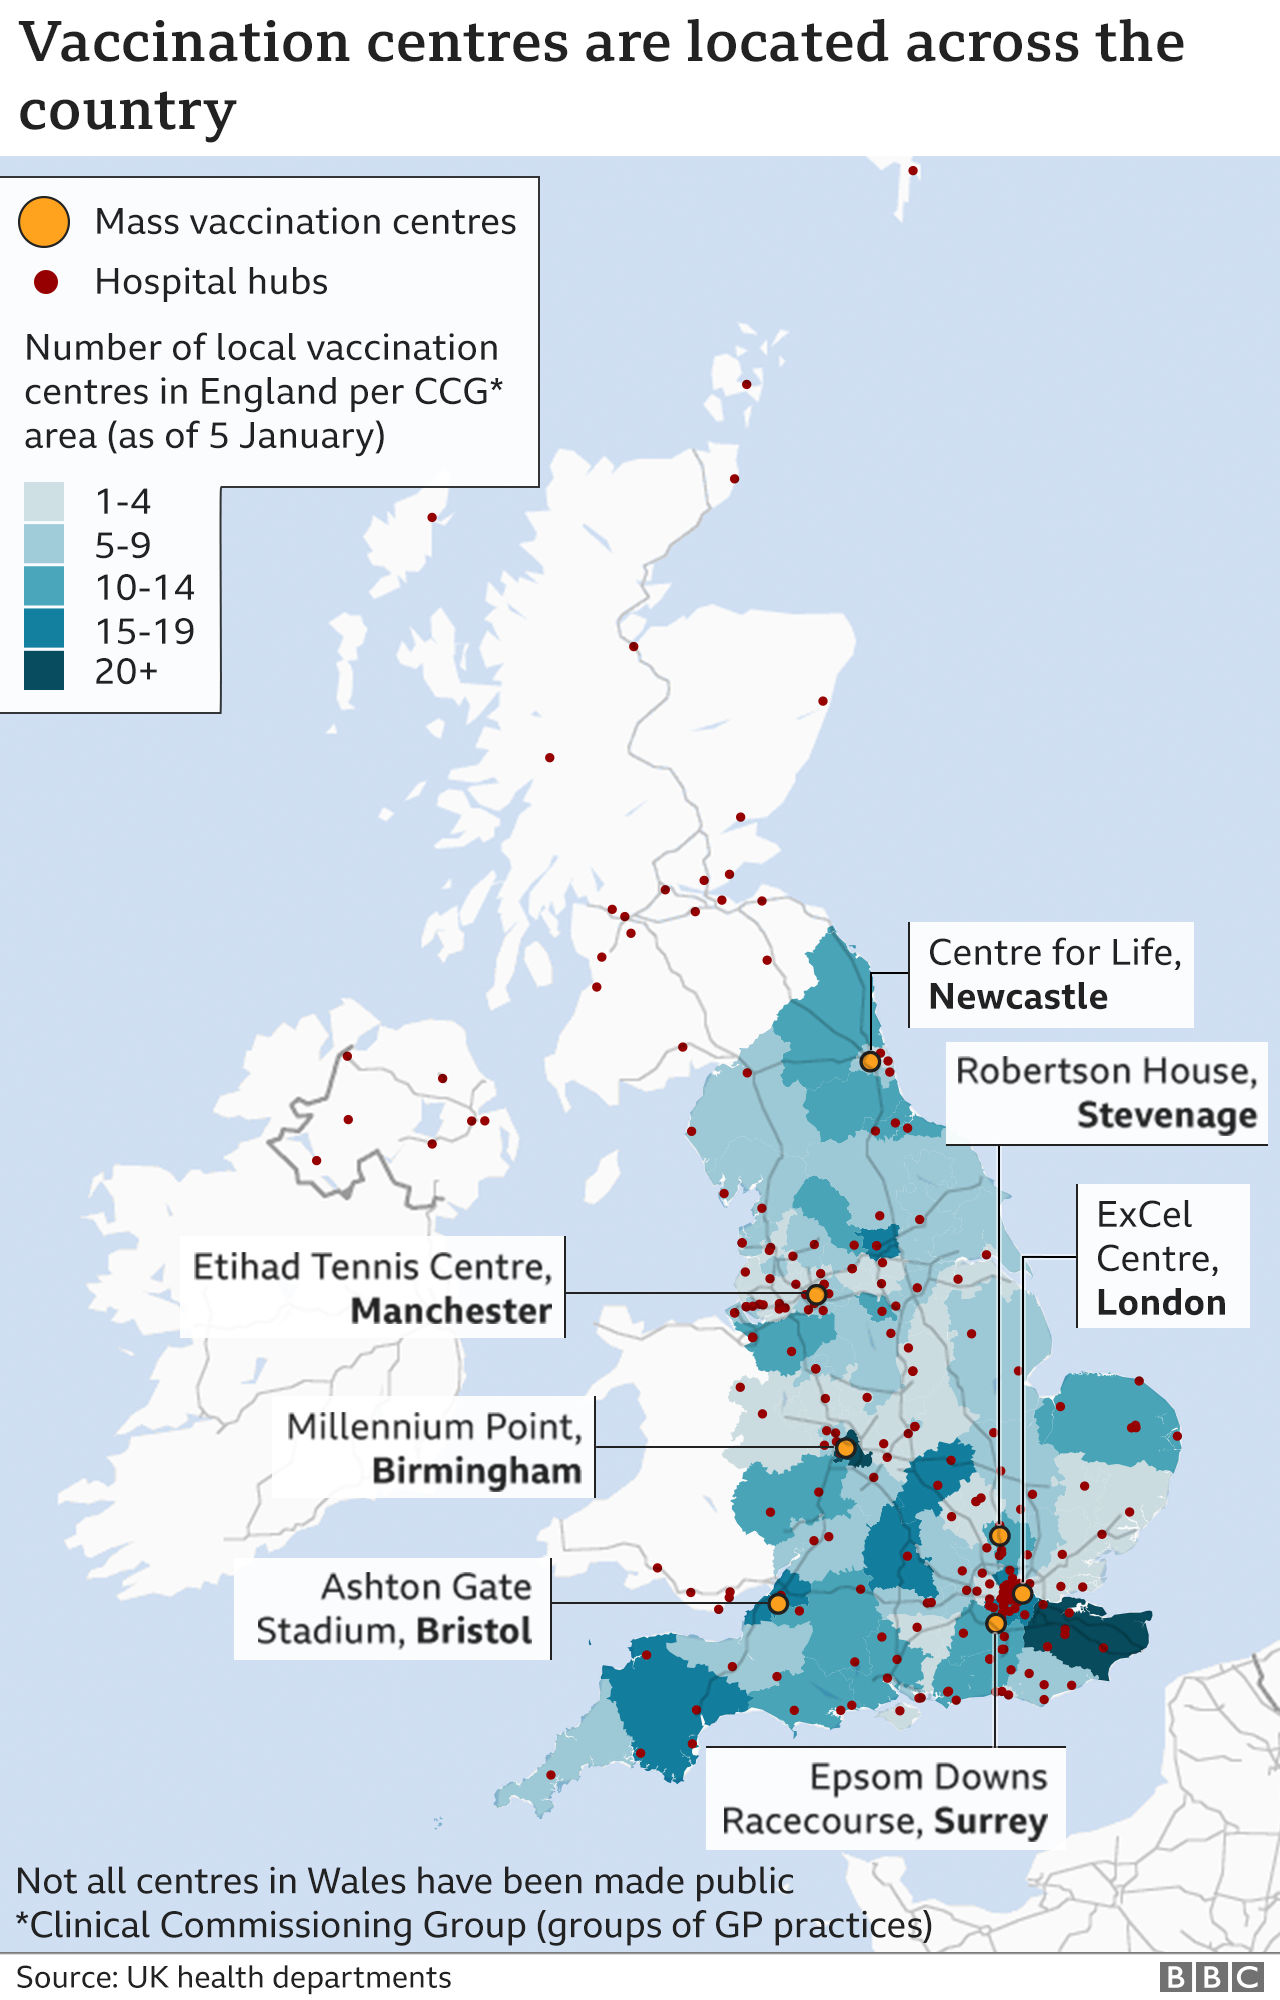 Map showing where England's vaccination centres and mass vaccination sites are, as well as the UK's hospital hubs